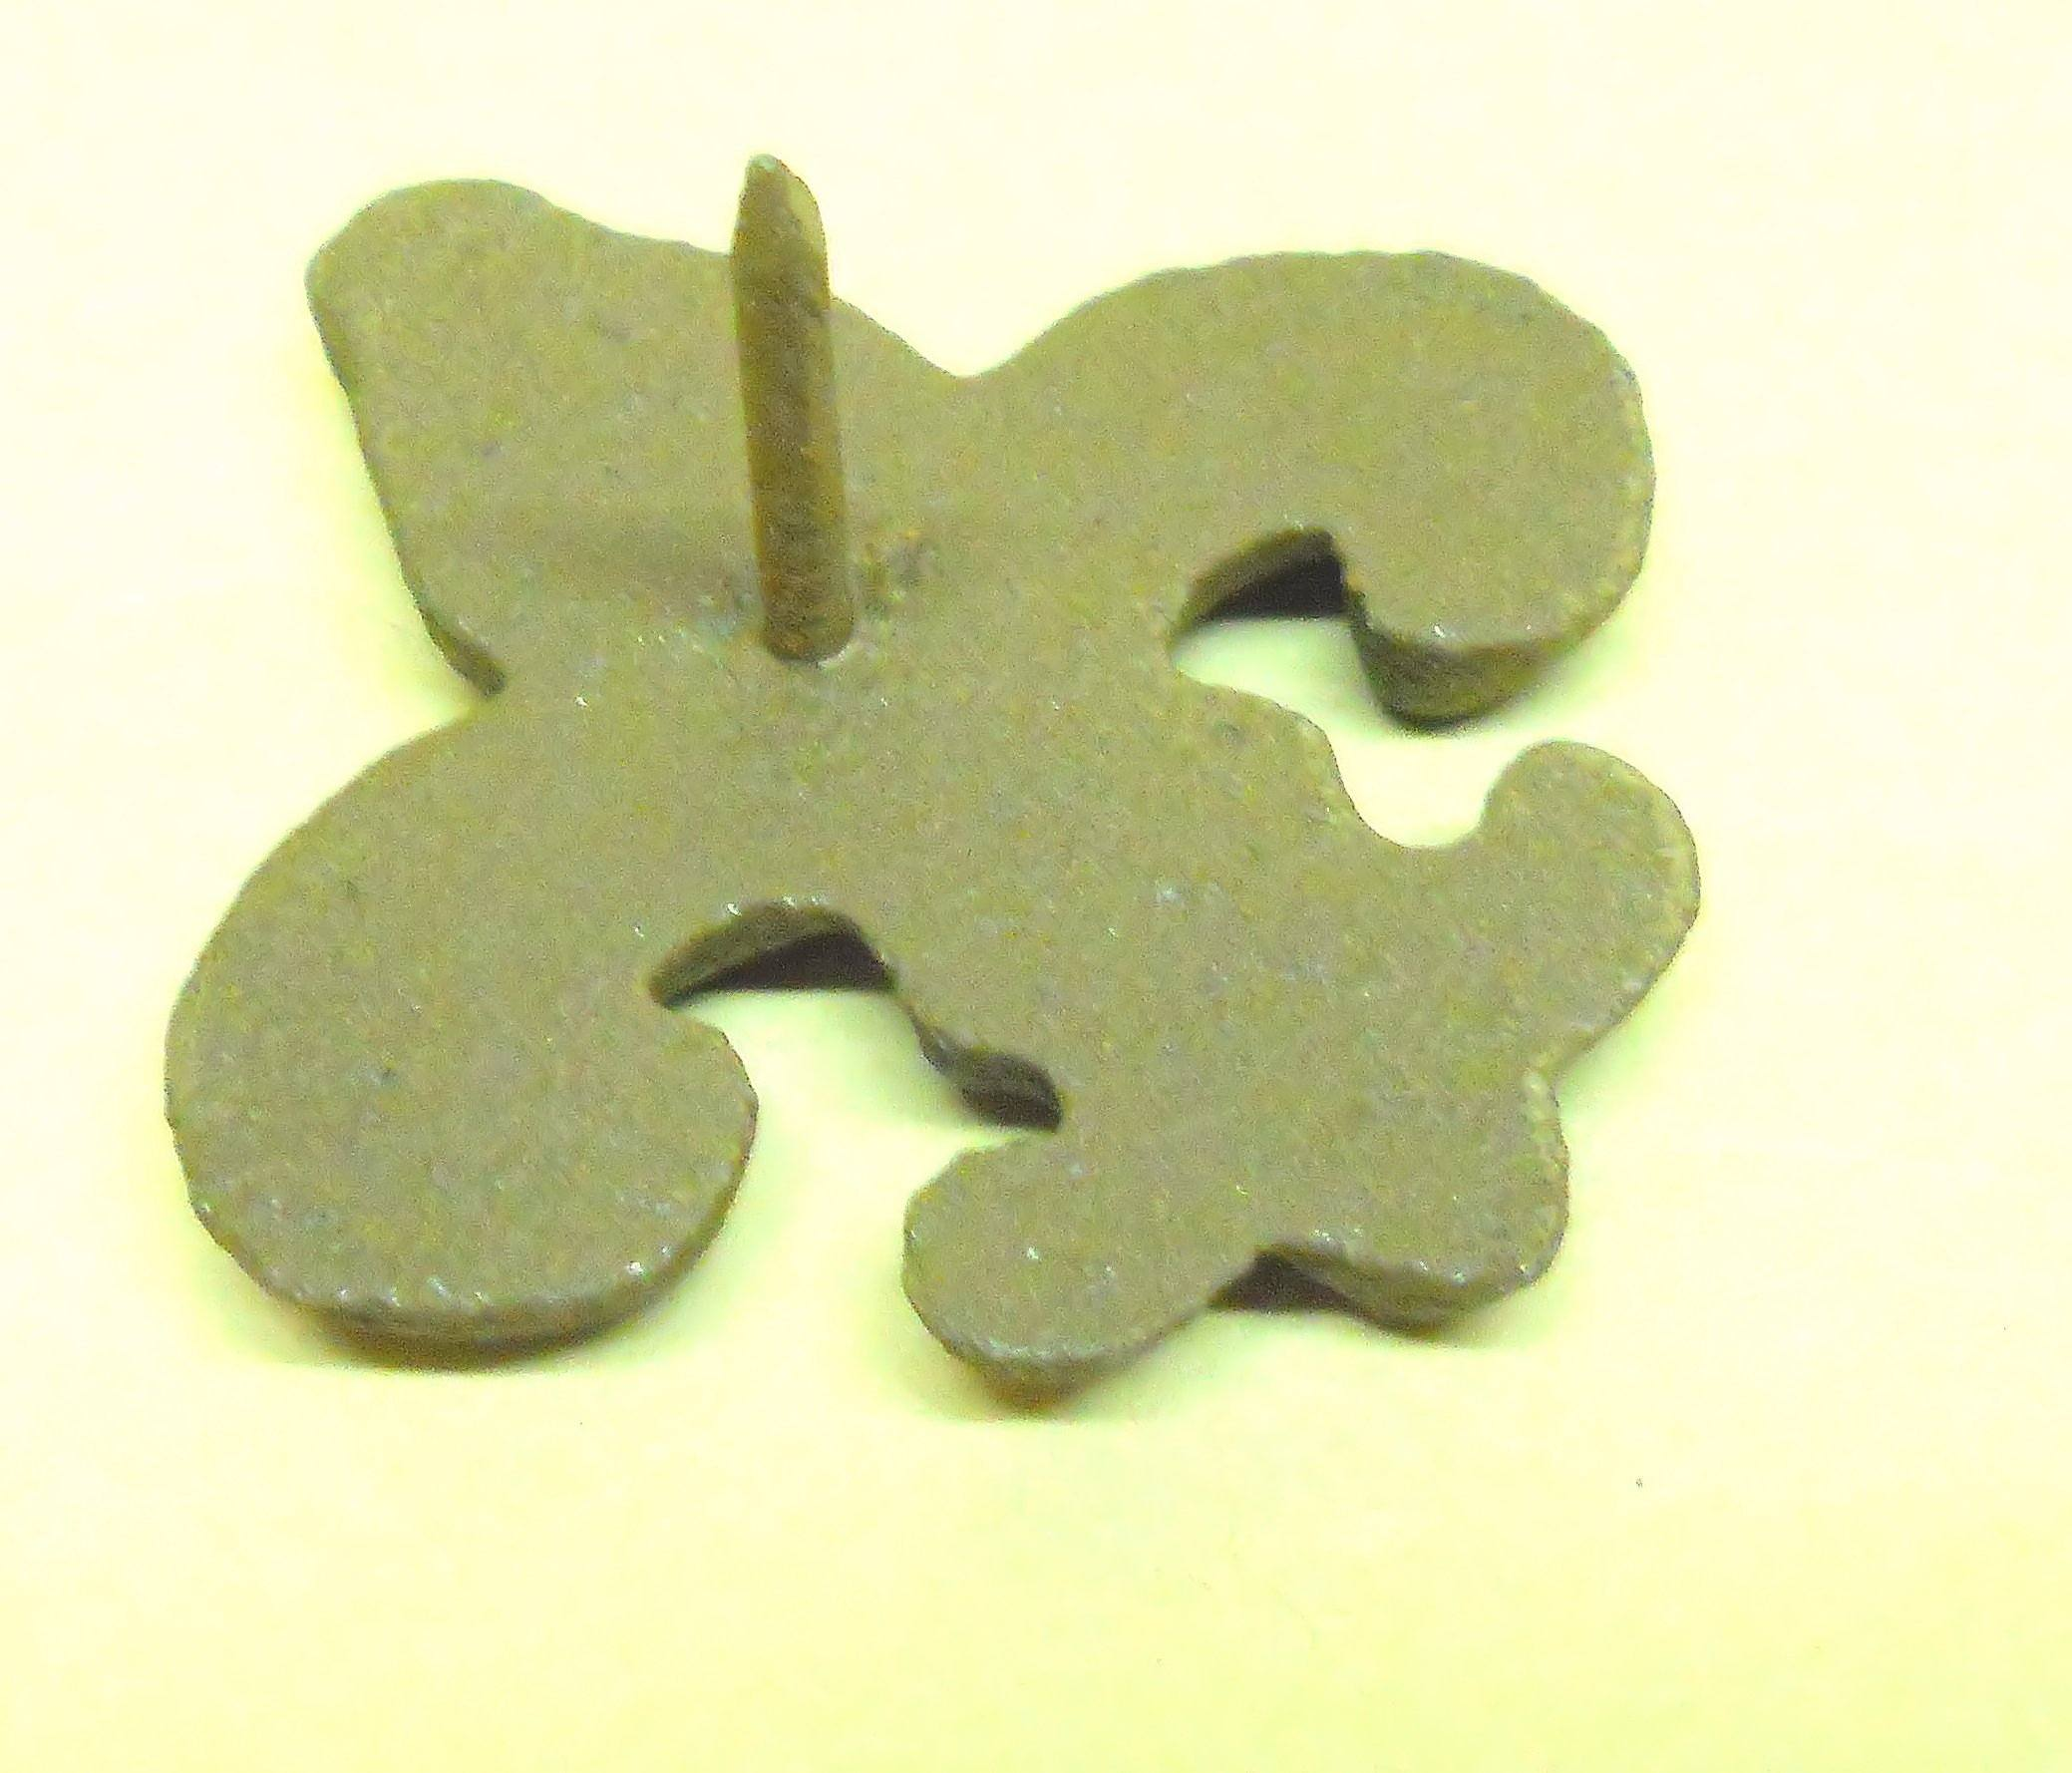 Fleur de Lys 25 pc Cast Iron Embellishments w/ Nail 2.5x2.5 inch All-Purpose Craft Supplies Carvers Olde Iron